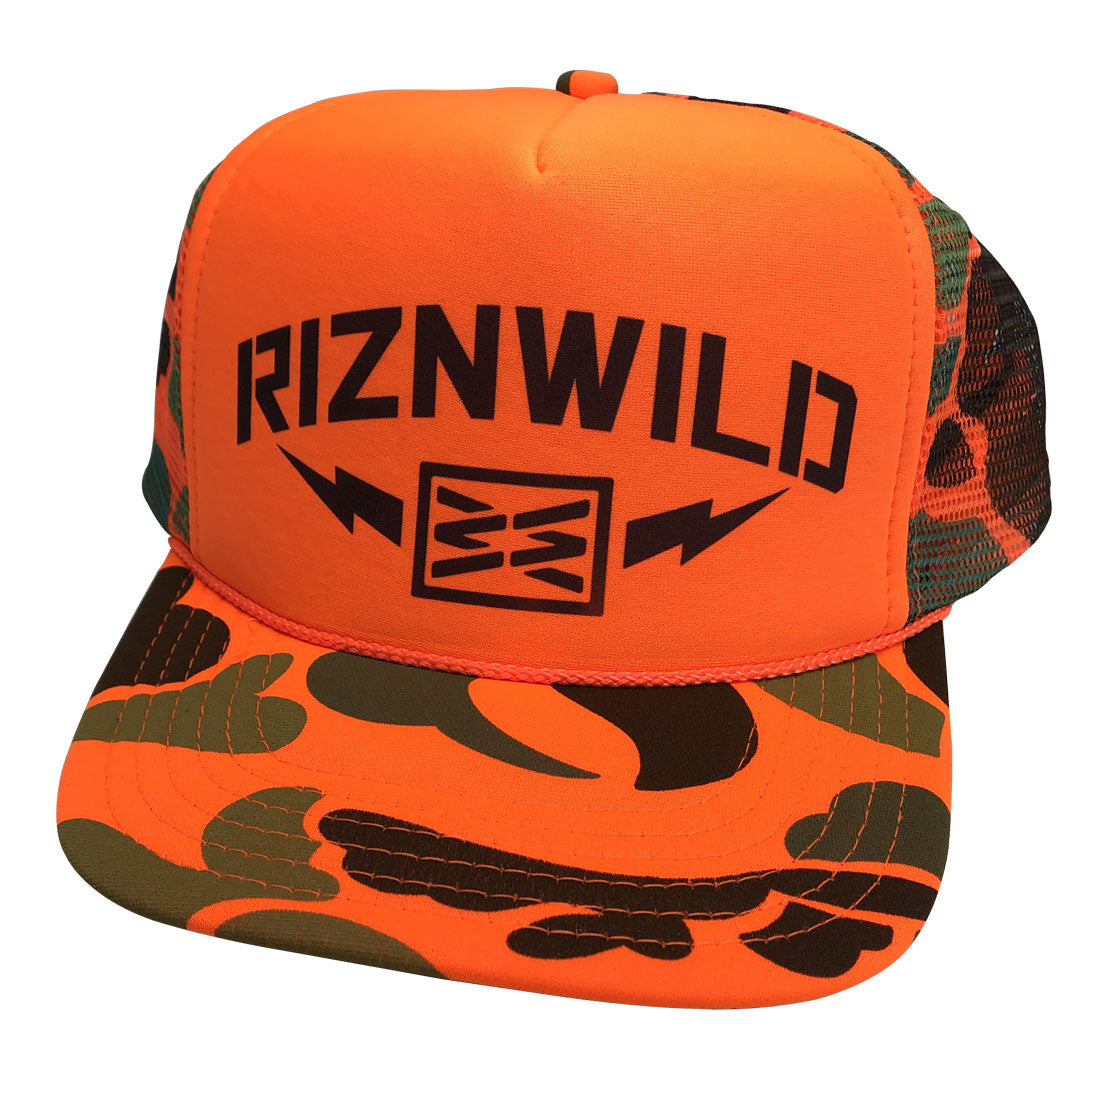 Danger Curved Bill Trucker Hat in Neon Orange Camo